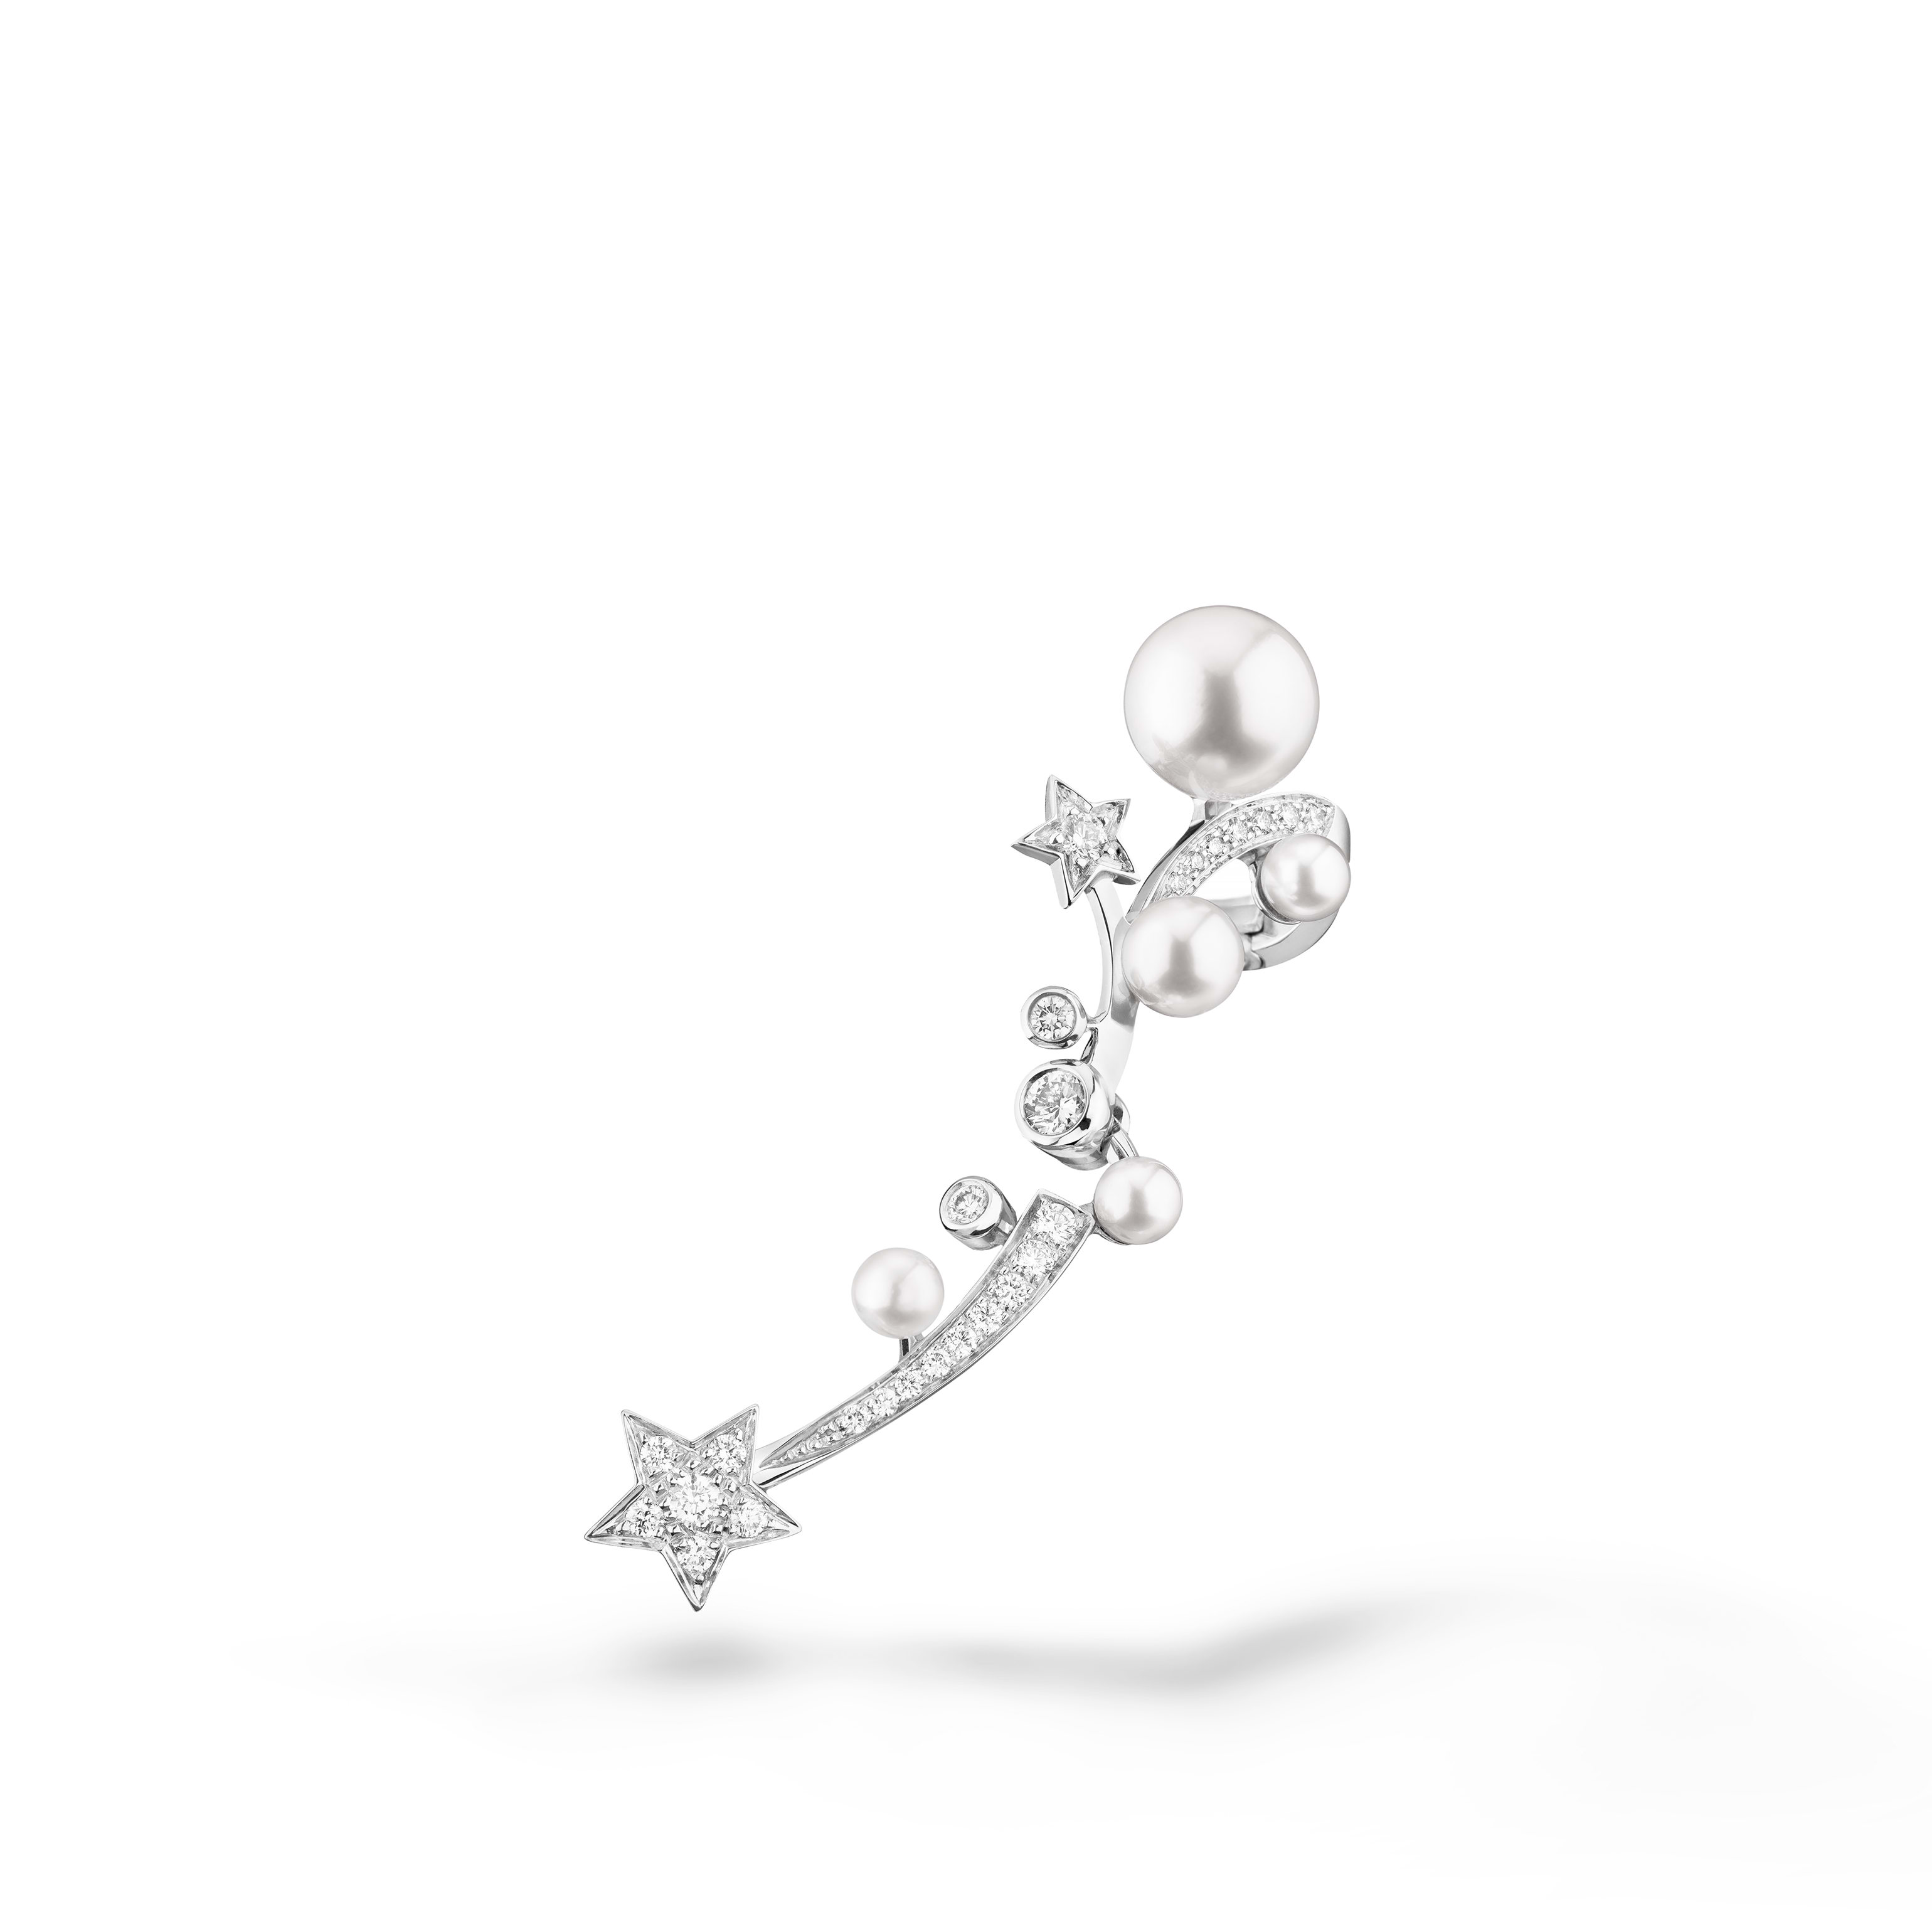 Comète Perlée ear cuff - 18K white gold, diamonds, cultured pearls - CHANEL - Default view - see standard sized version